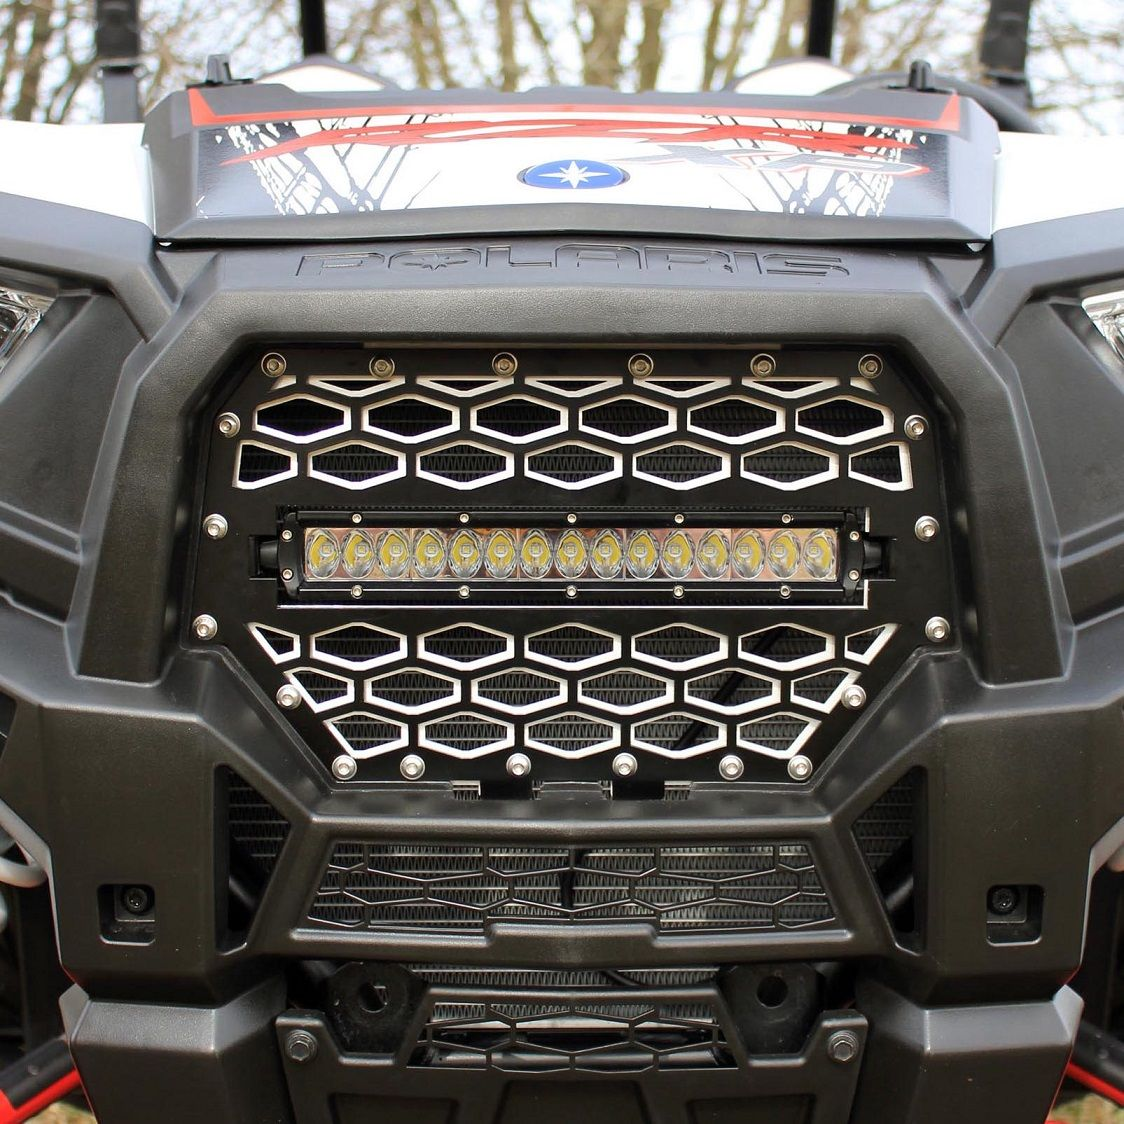 Modquad Racing Front Grill W 10 Inch Led Light Bar 2014 19 Polaris Rzr Xp 1000 Xp Turbo S 1000 900 S 900